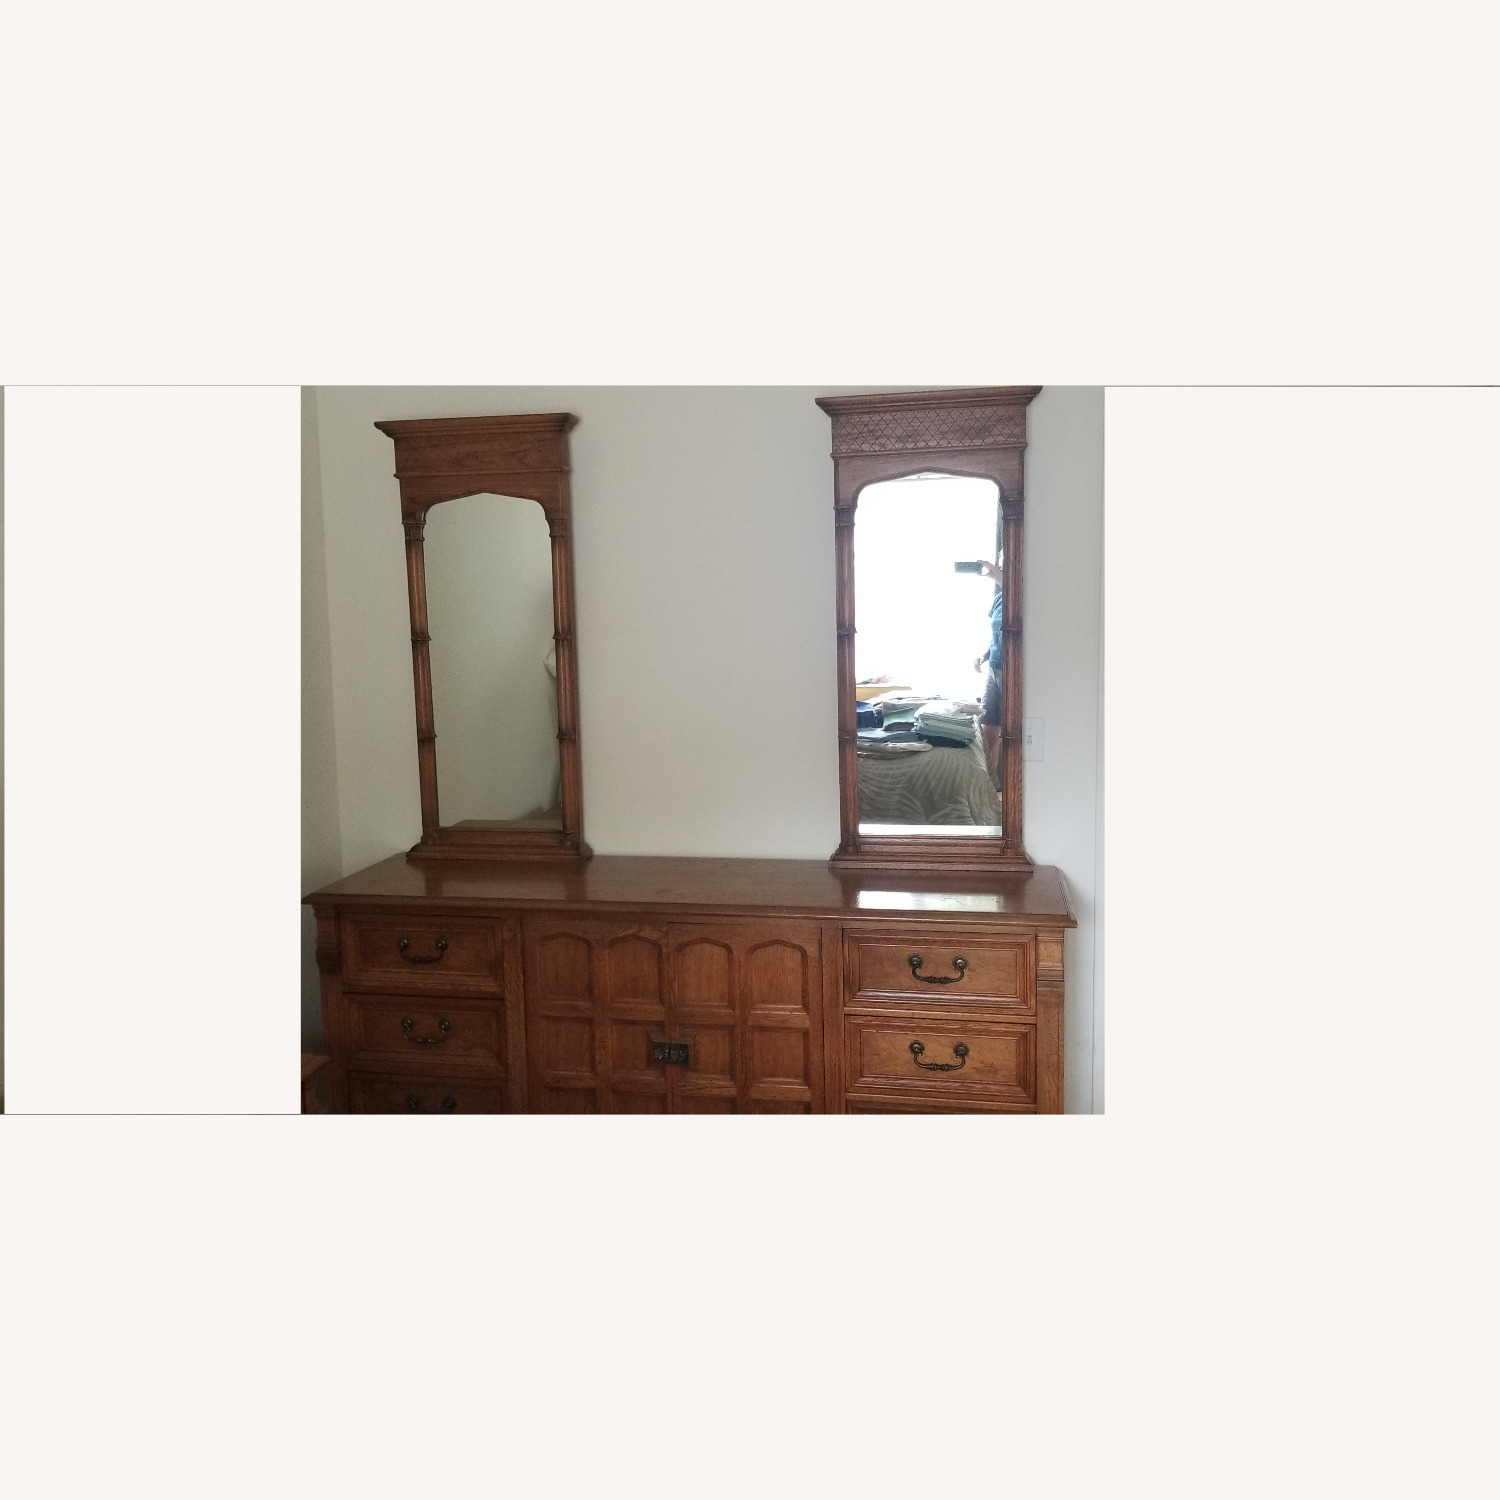 Vintage Drexel Dresser with two Large Mirrors - image-0